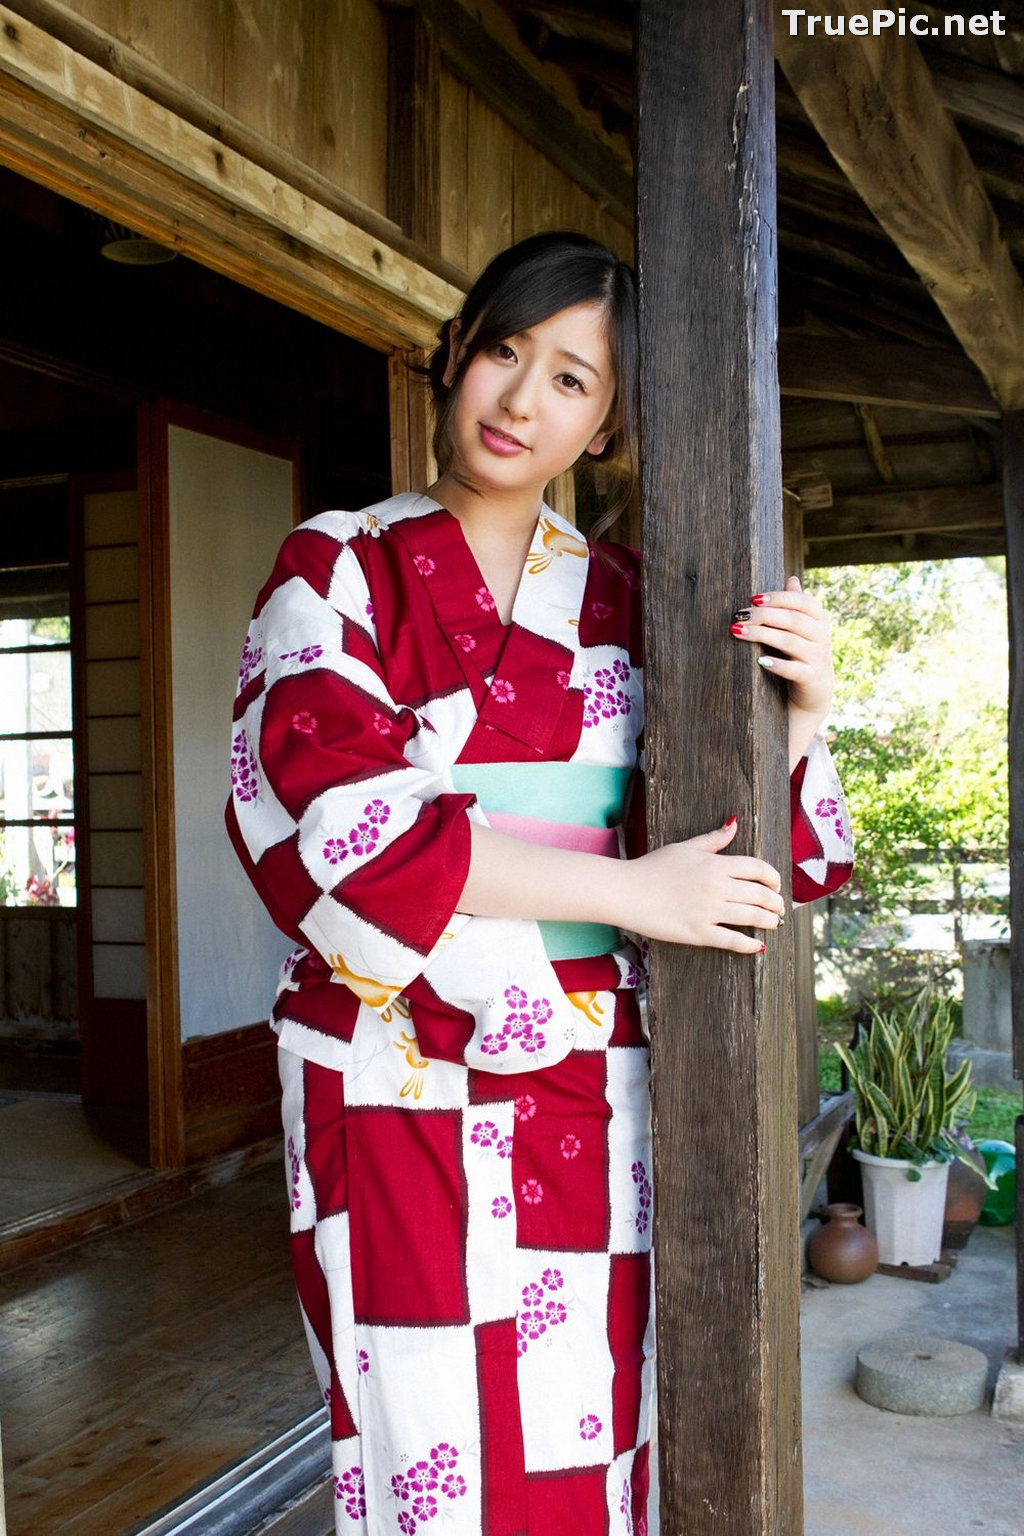 Image [YS Web] Vol.561 - Japanese Actress and Gravure Idol - Murakami Yuri - TruePic.net - Picture-4